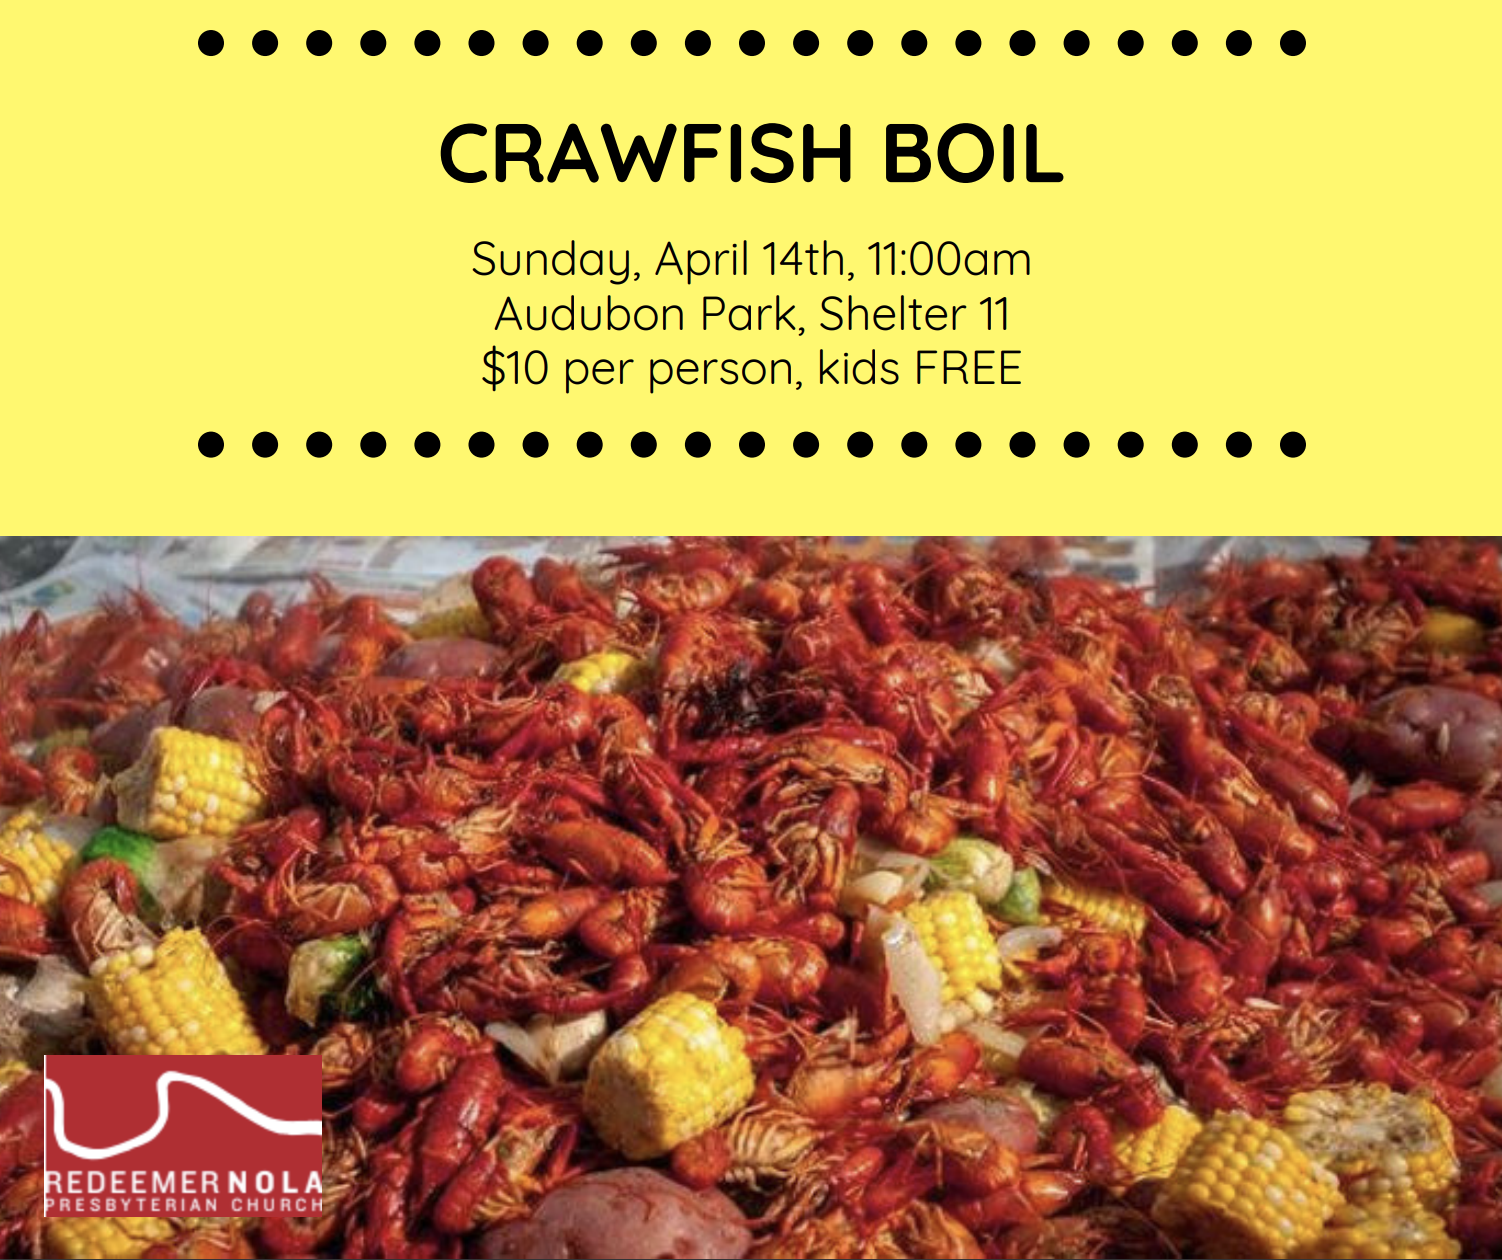 Join us for a crawfish boil at Audubon Park!